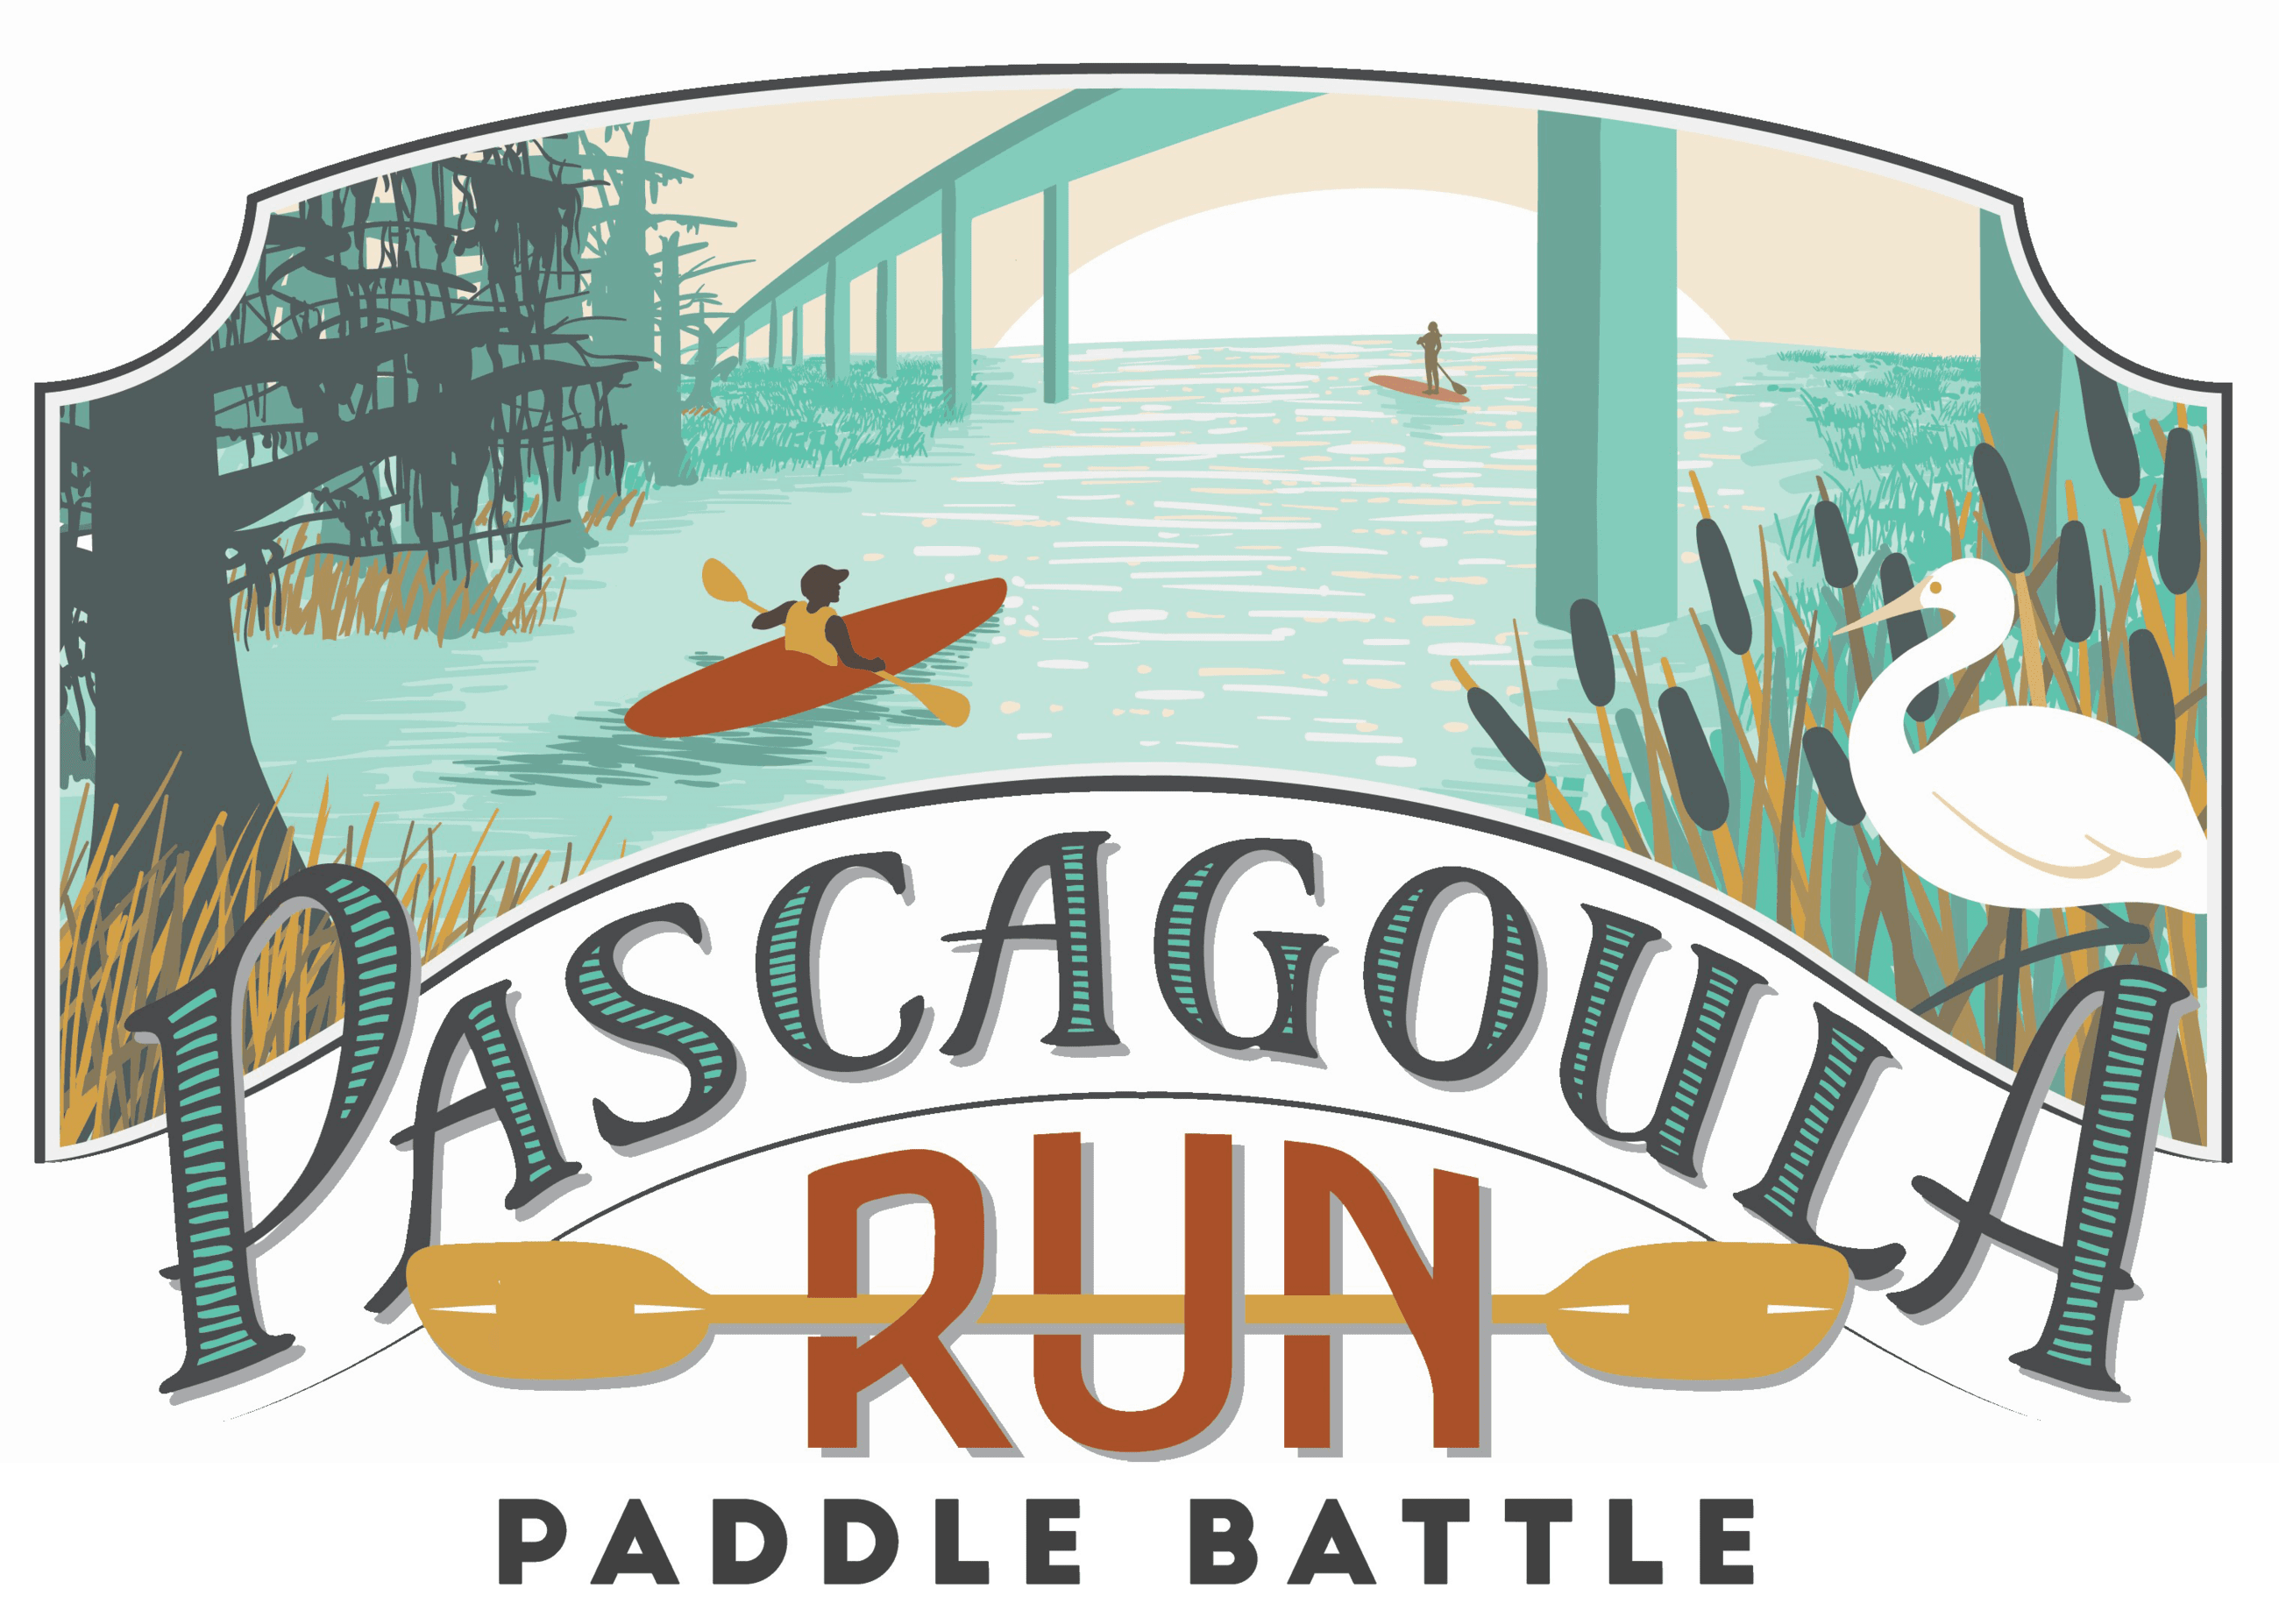 Pascagoula Run Paddle Battle Logo